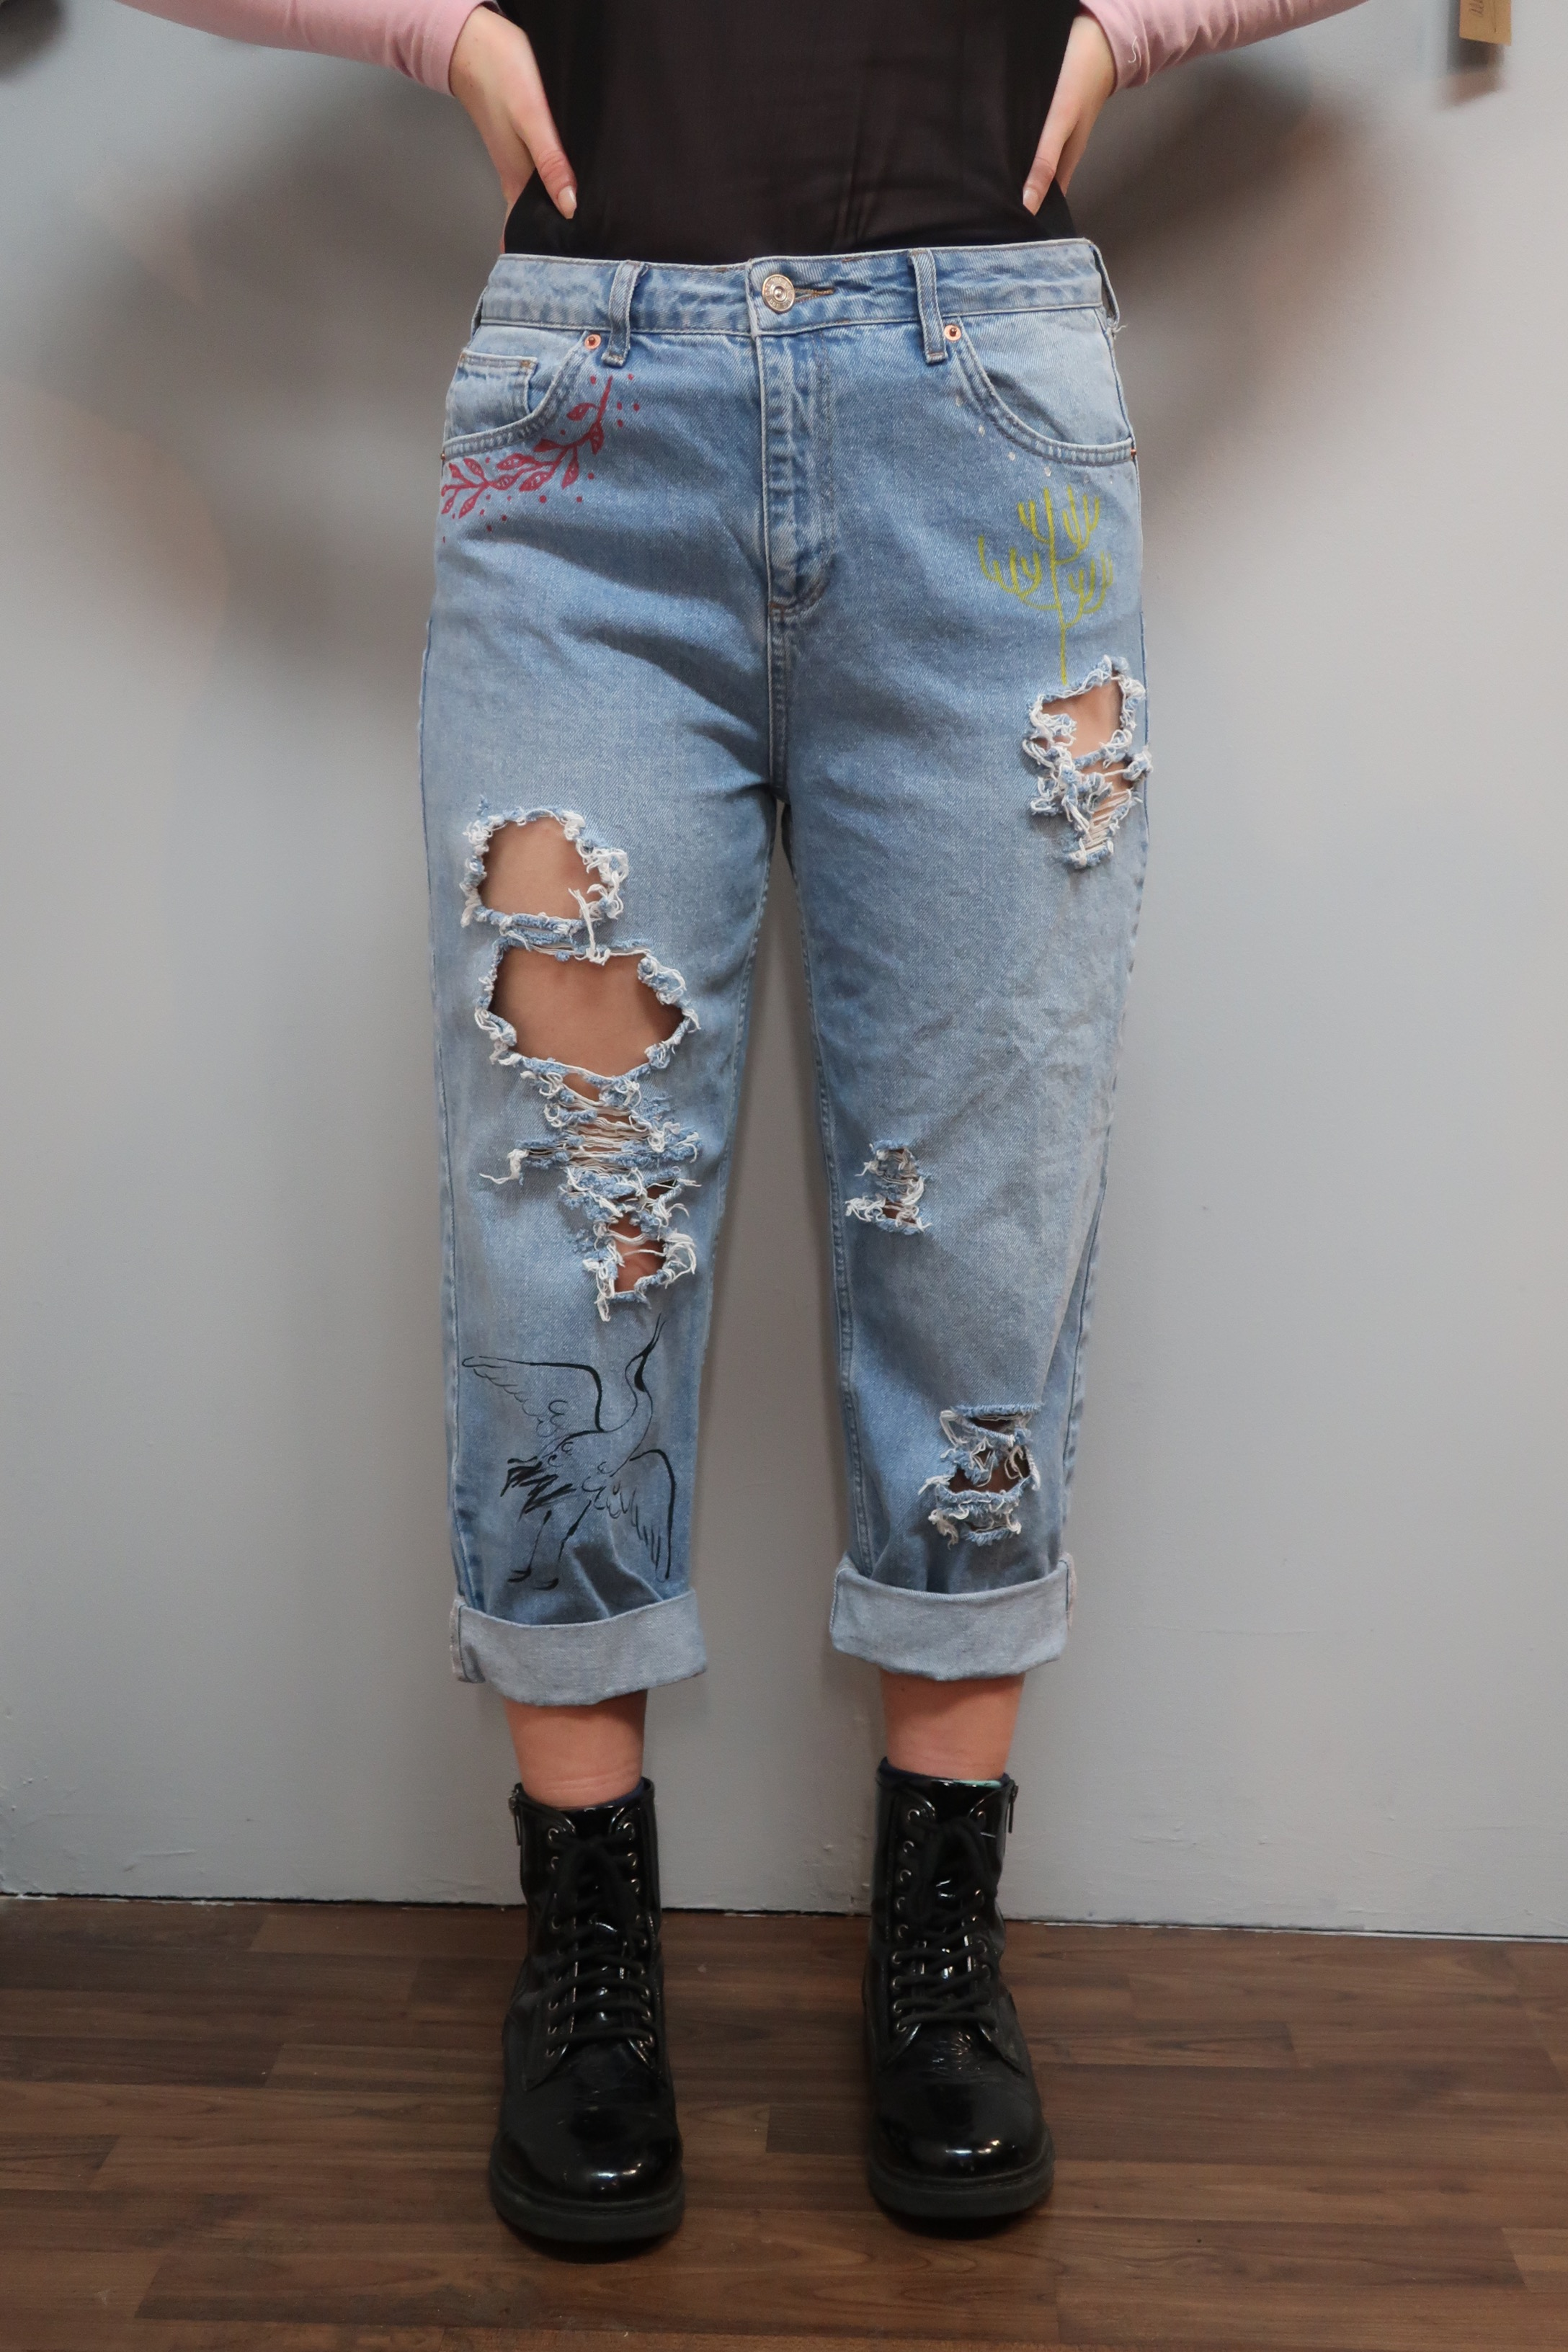 Collaborative Denim Jeans project by Alba Rey, Be tattoo .jpeg